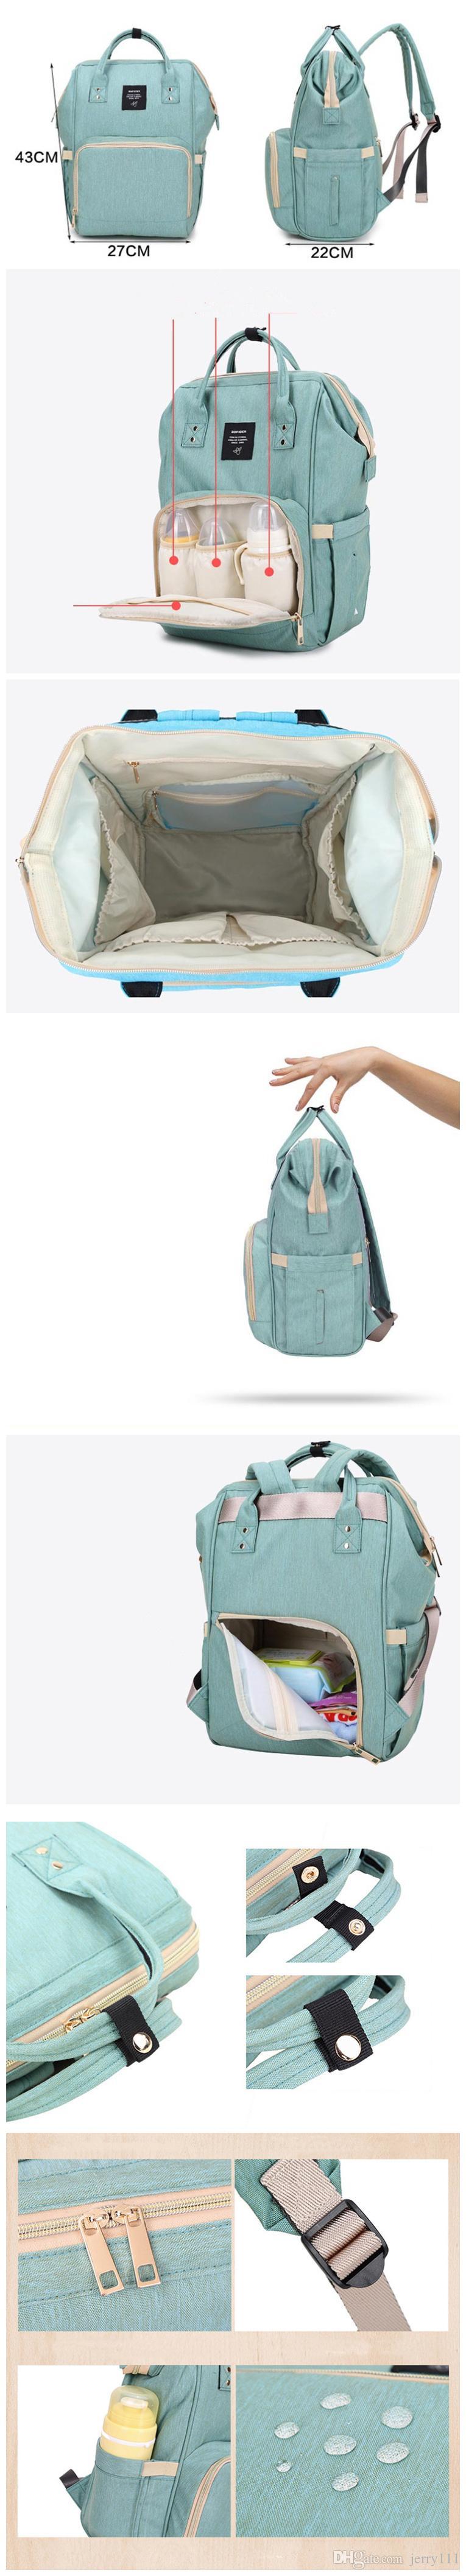 Multifunctional Baby Diaper Backpack Mommy Changing Bag Mummy Backpack Nappy Mother Maternity Backpacks LC637